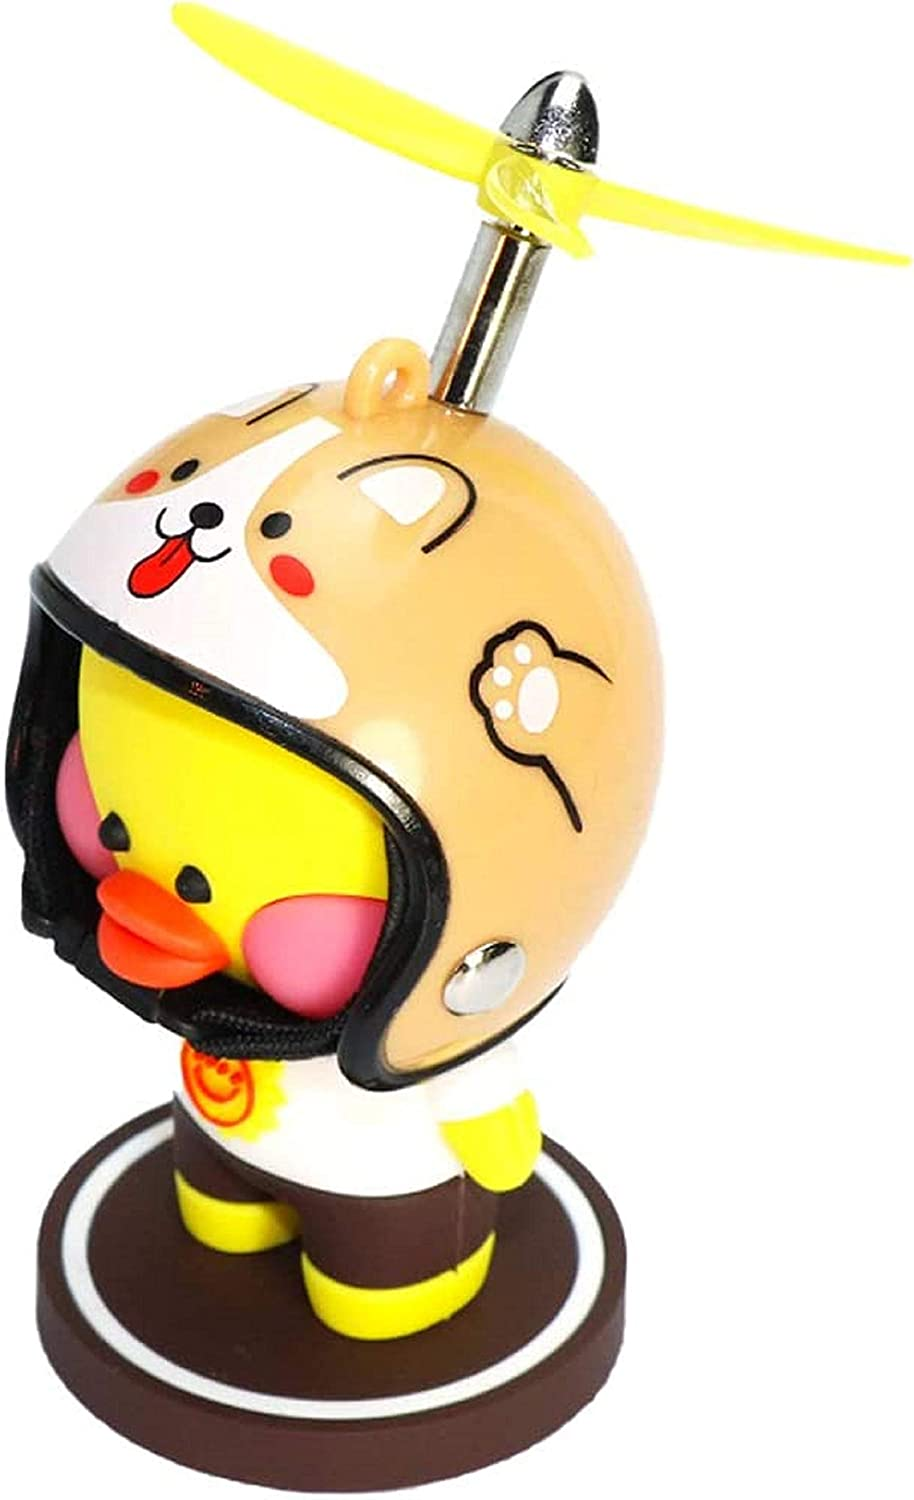 ZHB Yellow Rubber Duck Toy with Propeller Helmet Kids Hyaluronic Acid Duck Car Ornaments Car Dashboard Decorations for Adults Dog